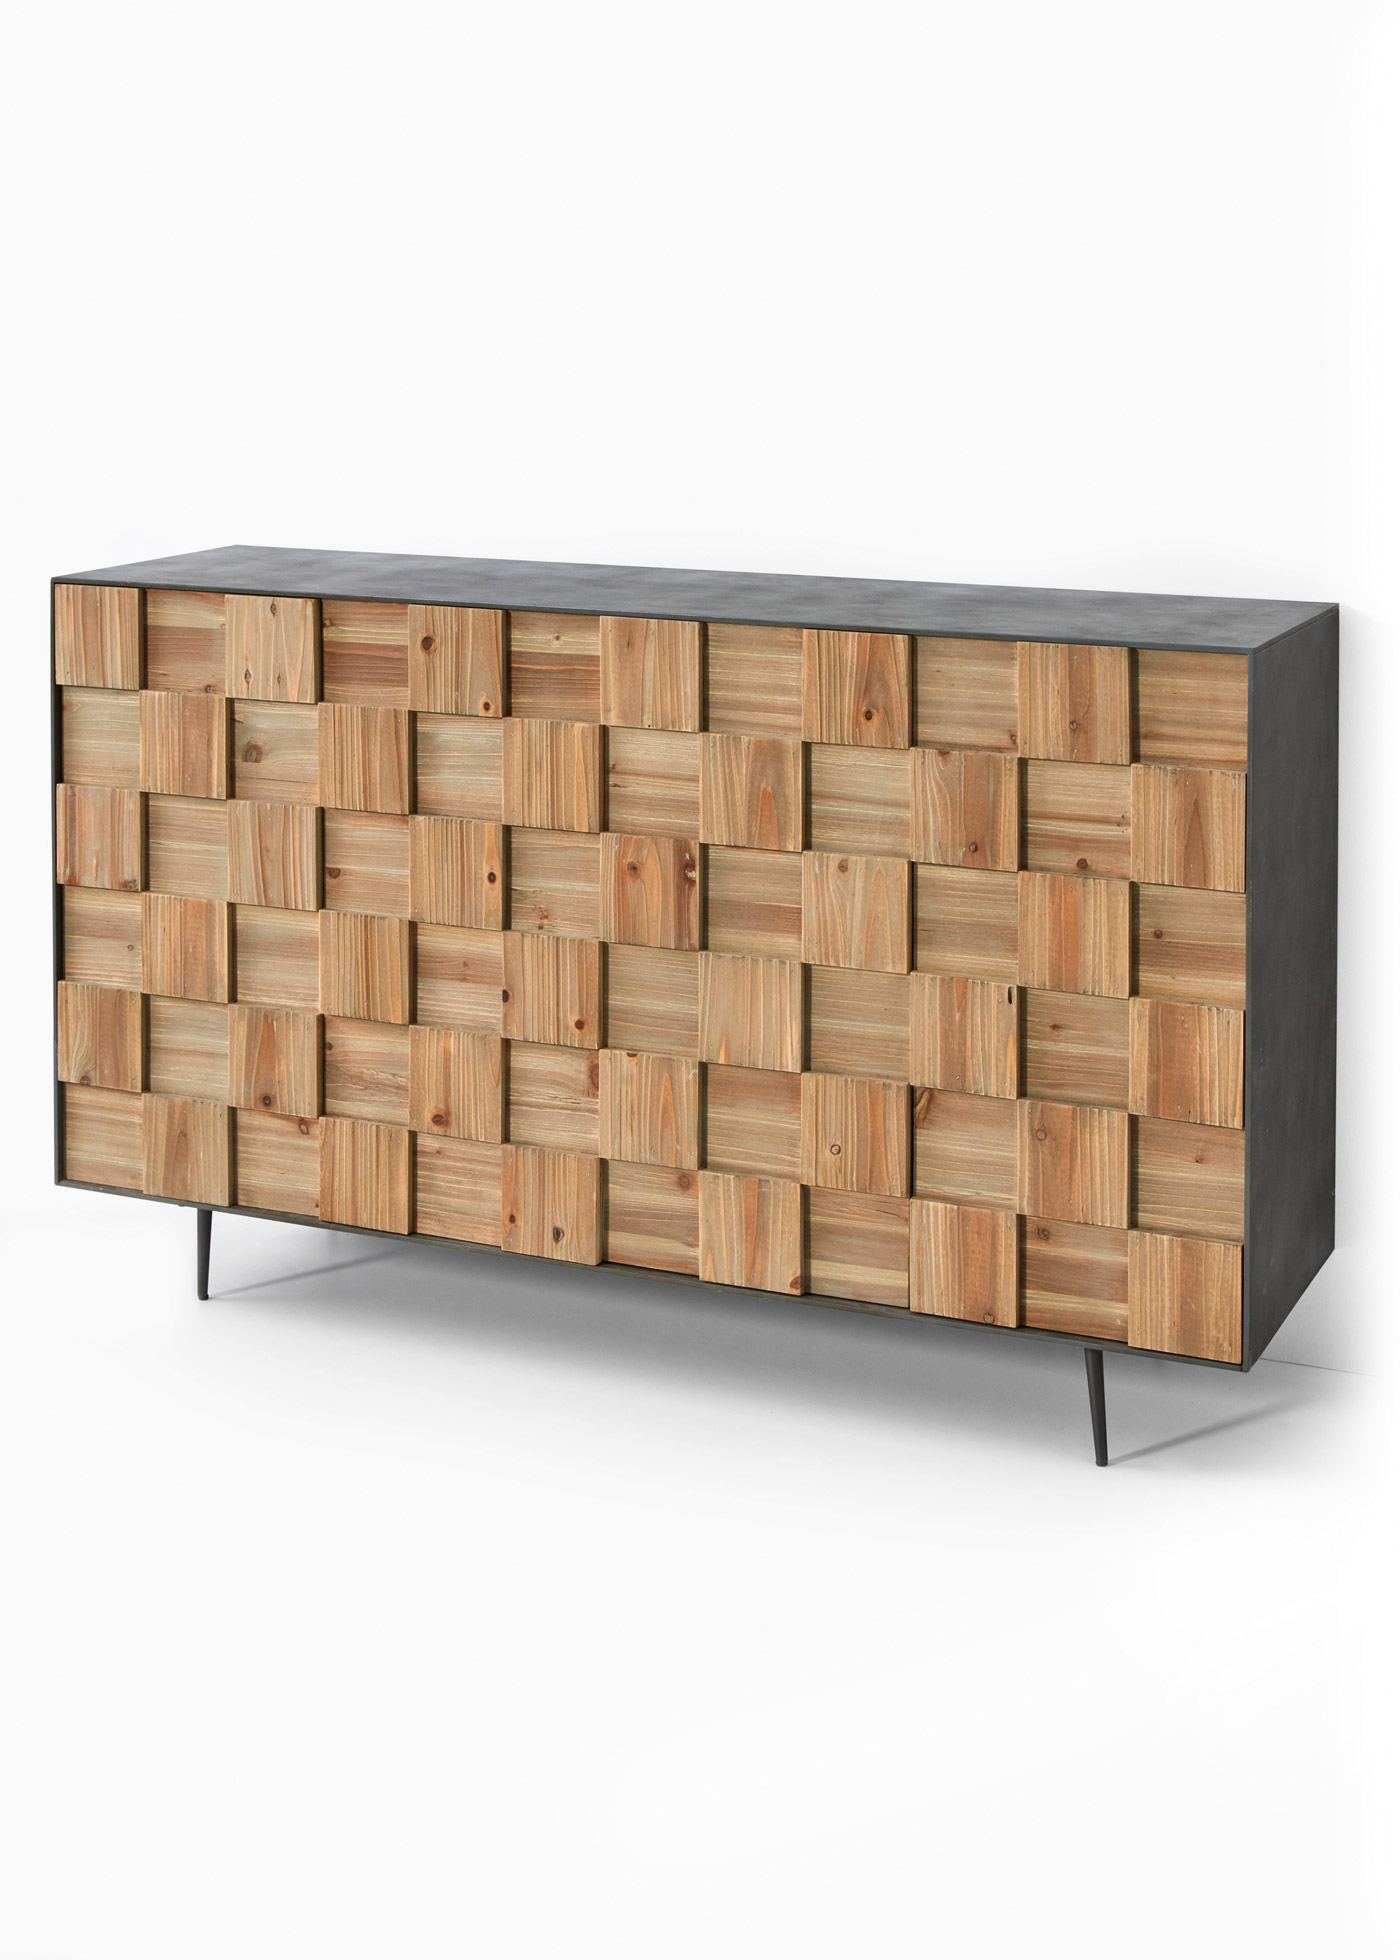 Wohnwände Unter 200 Euro Sideboard Manja In 2019 Products Cabinet Furniture Sideboard